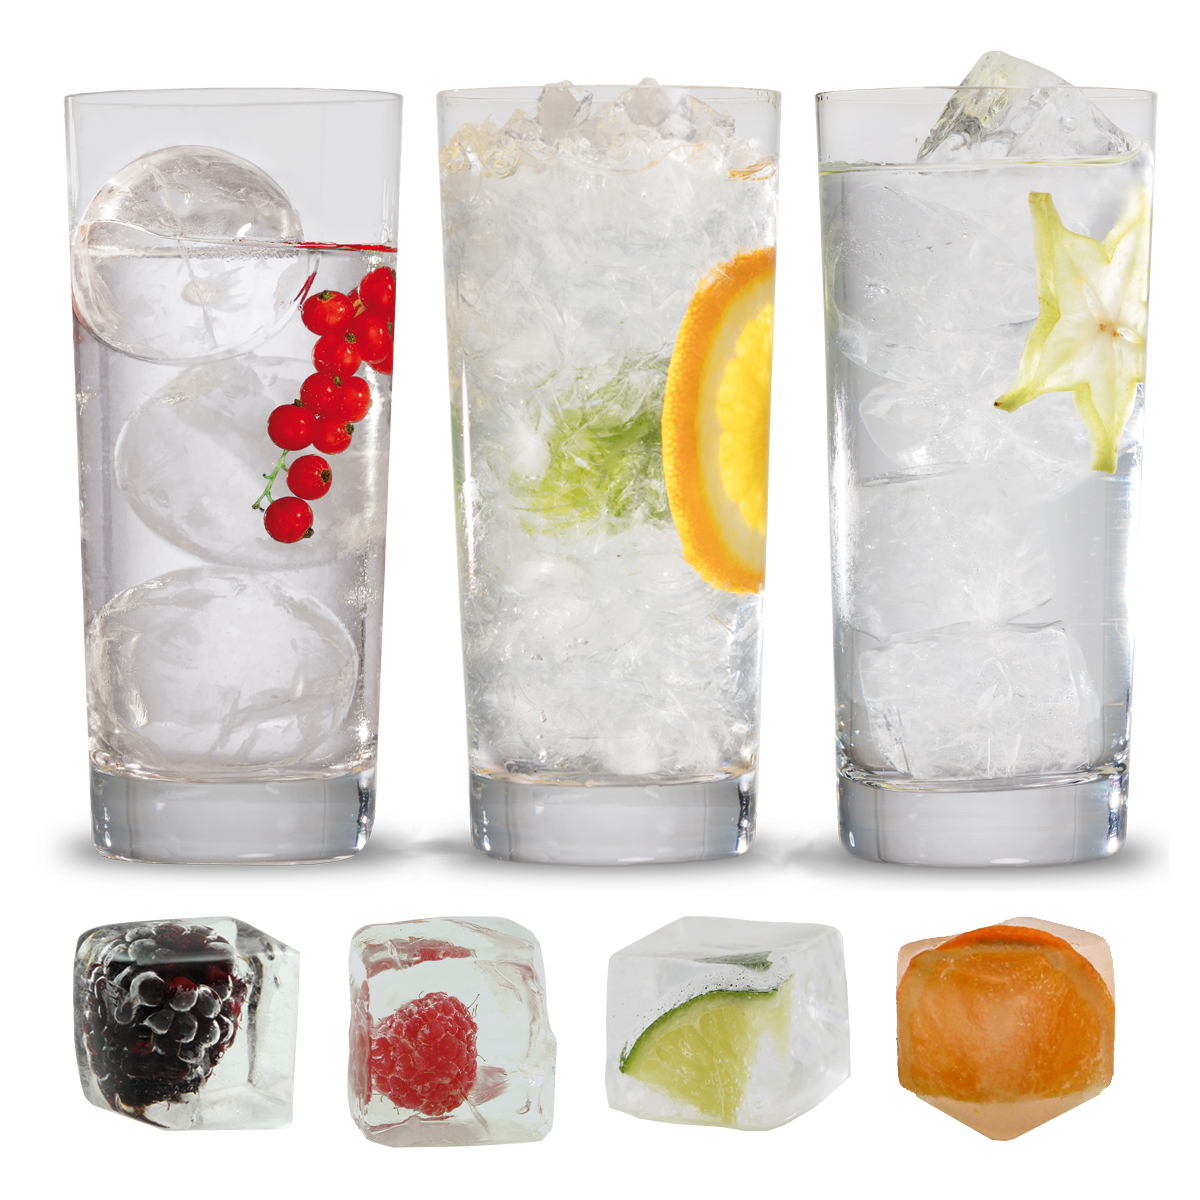 BAR-ICE SPECIAL Sortiment Change